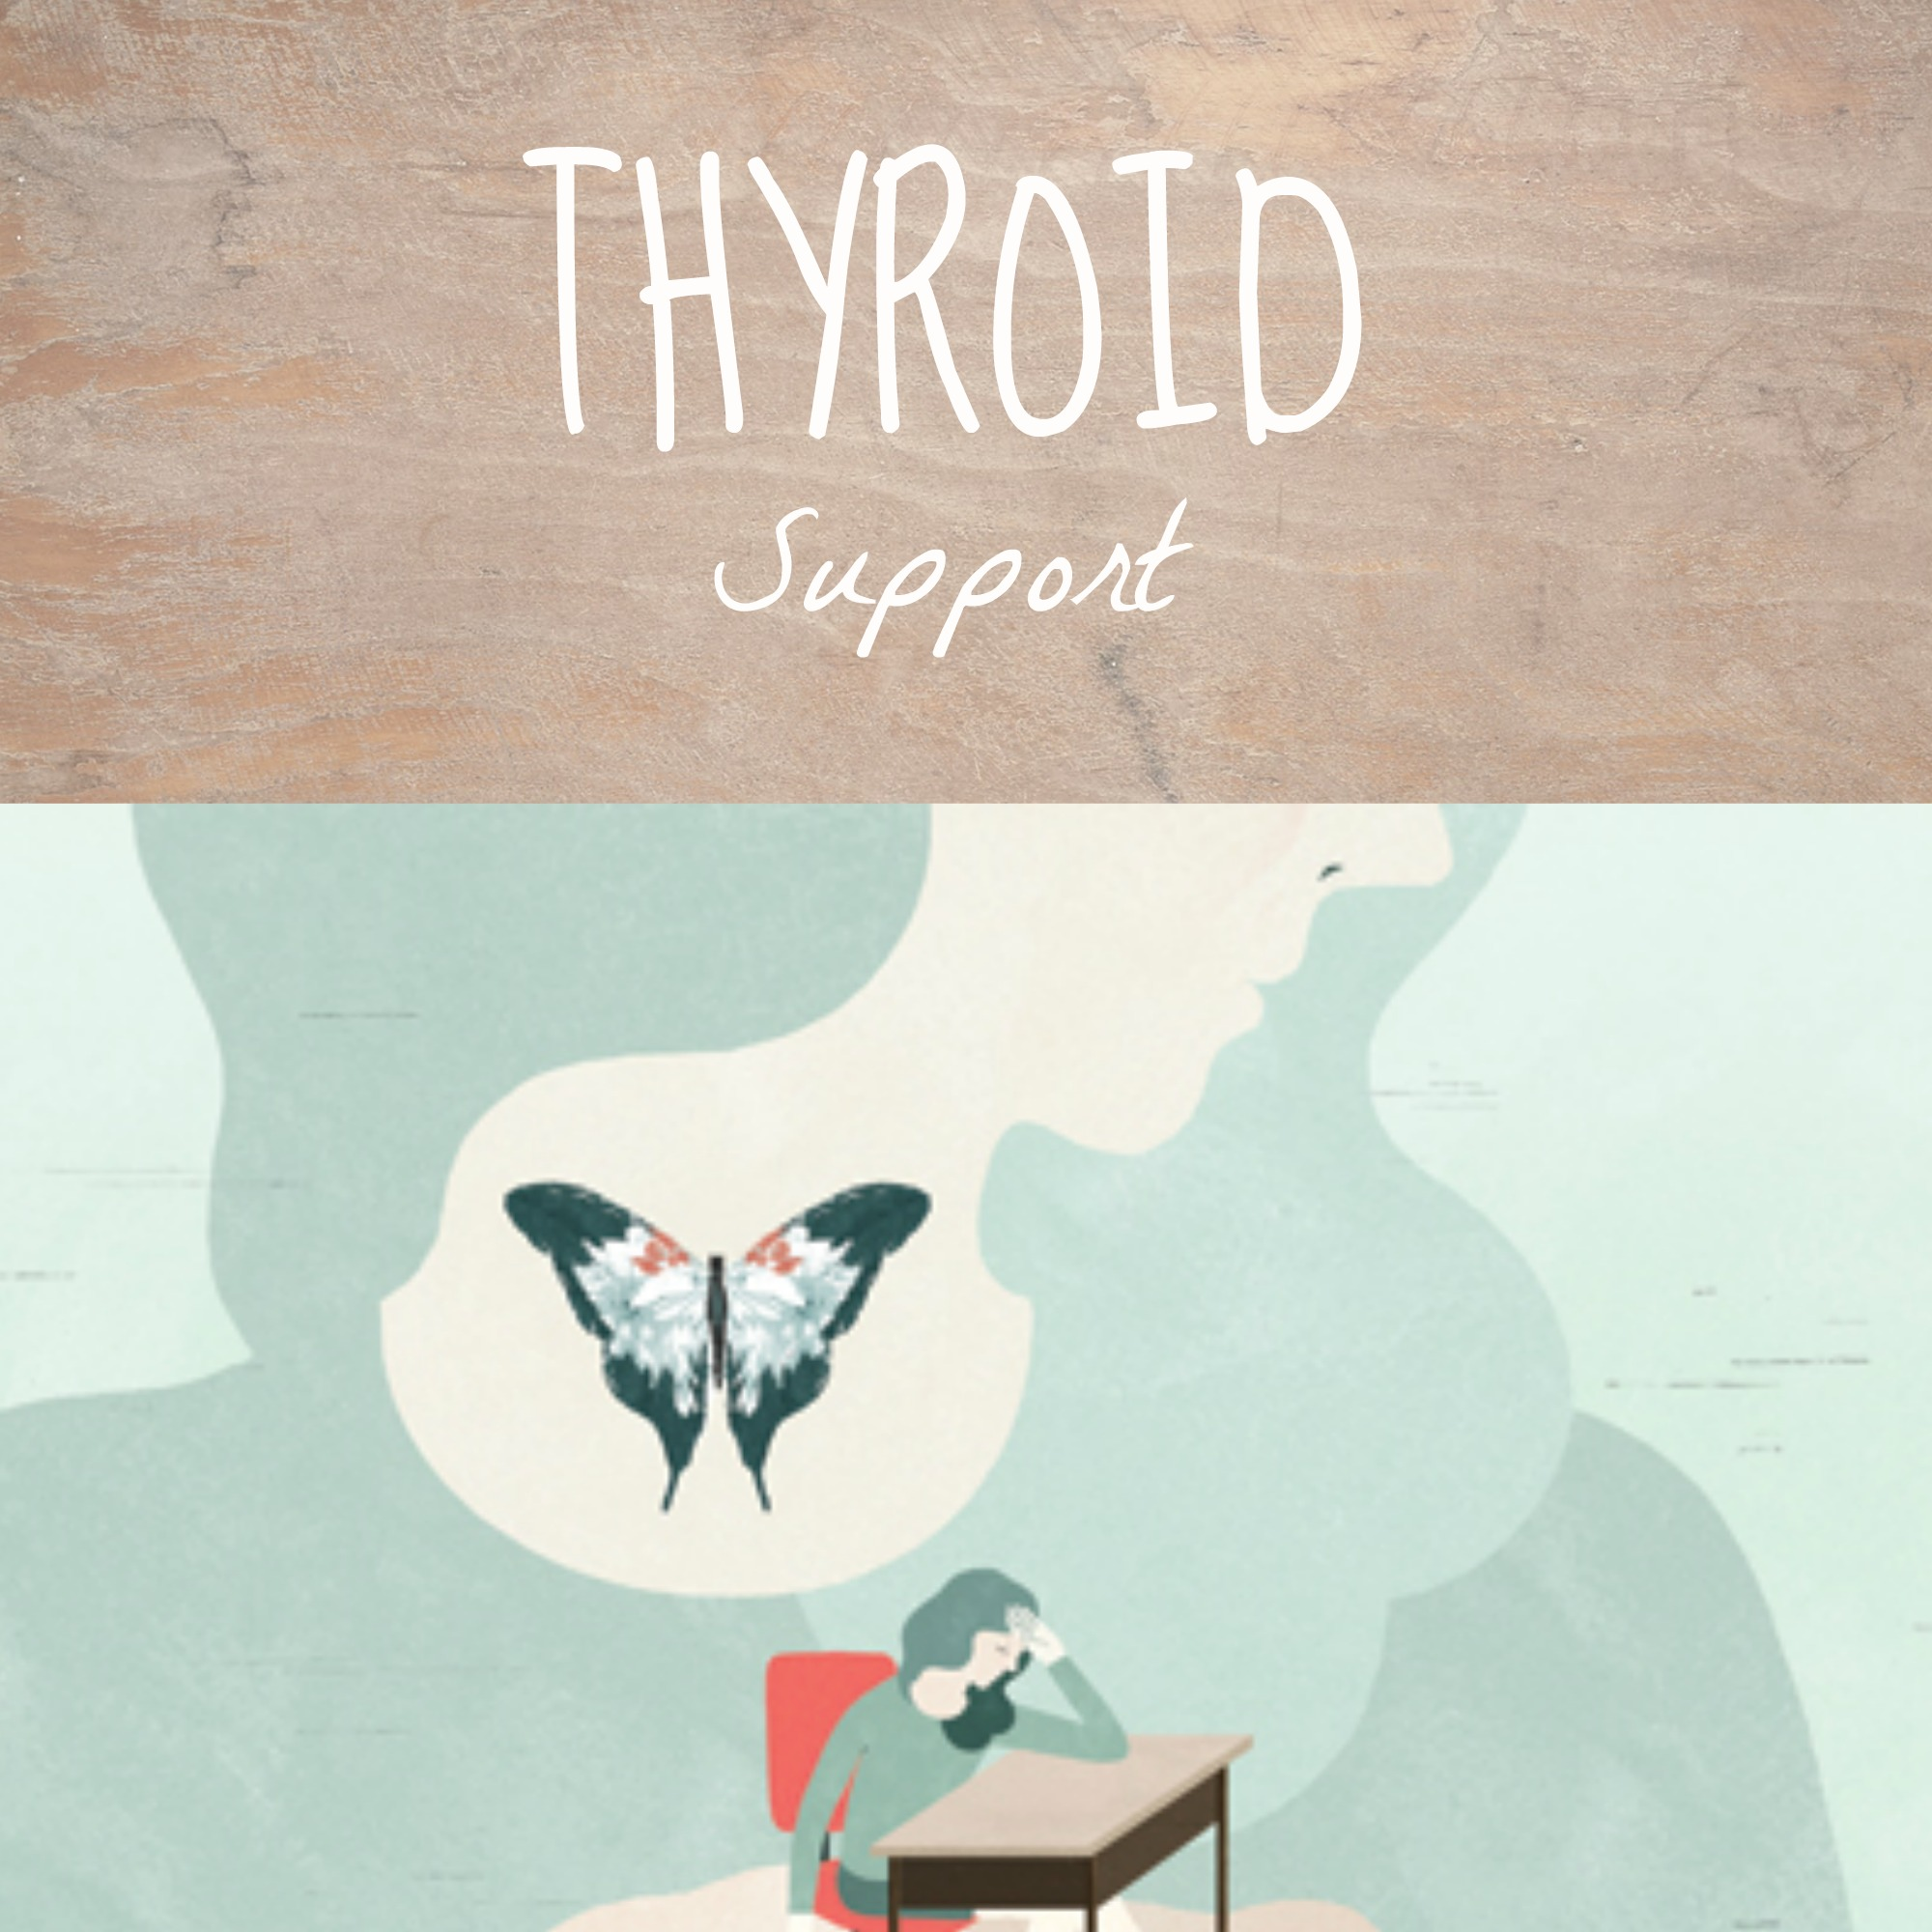 Is your thyroid to blame?